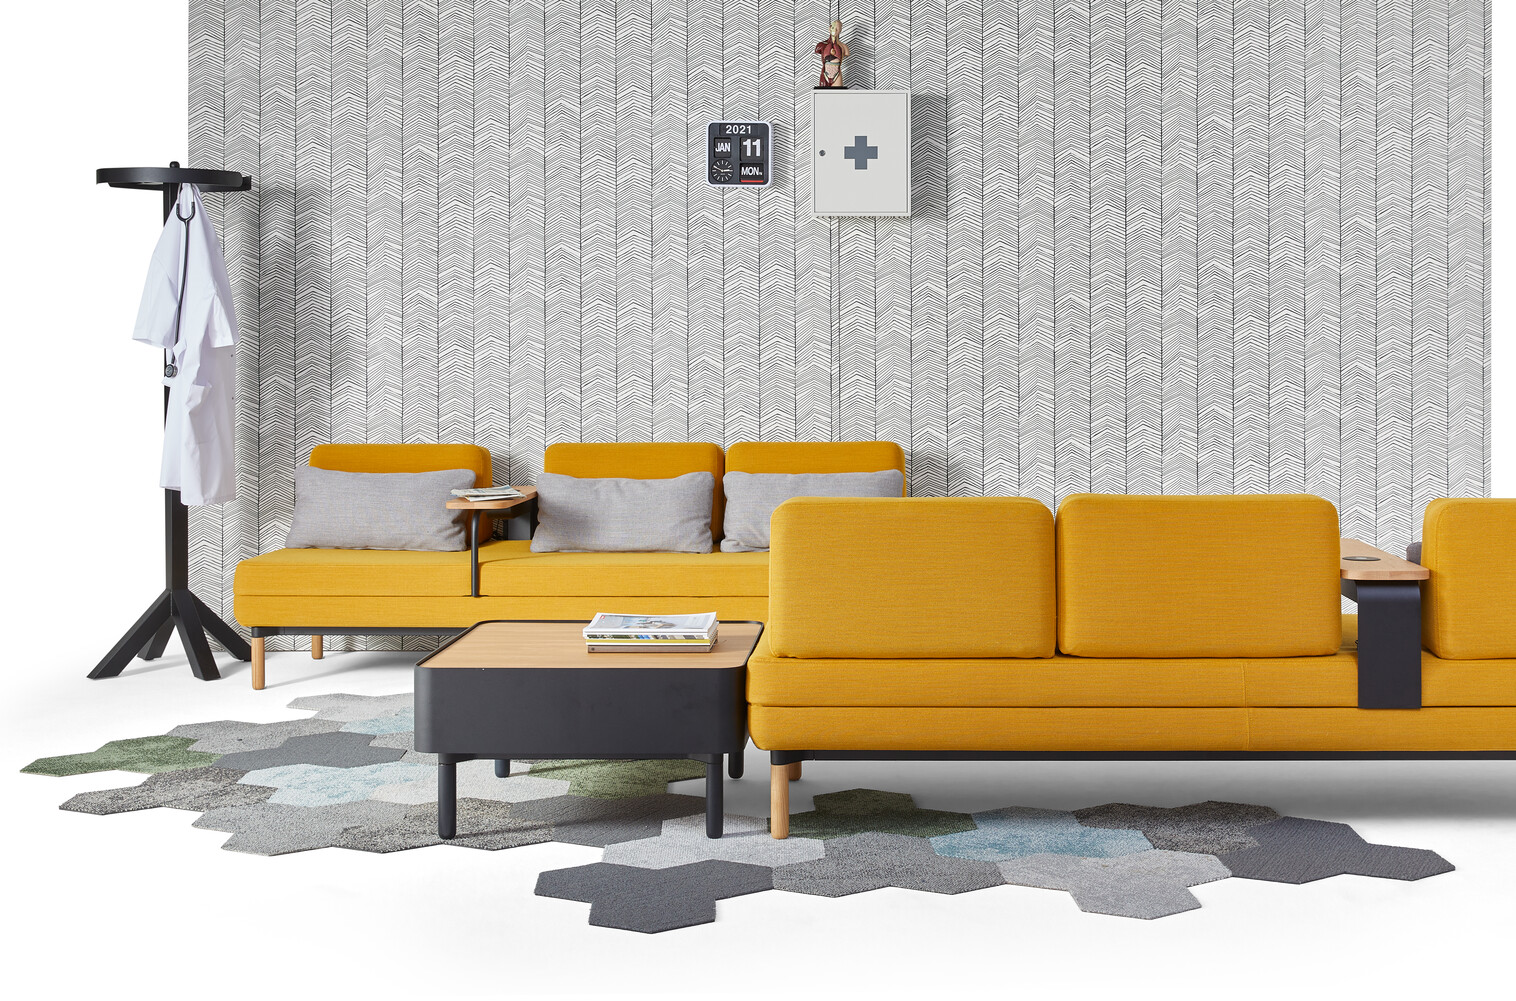 Gispen STEE sofas in black upholstered in yellow with black coffee table and oak top with black Dukdalf coat stand front view